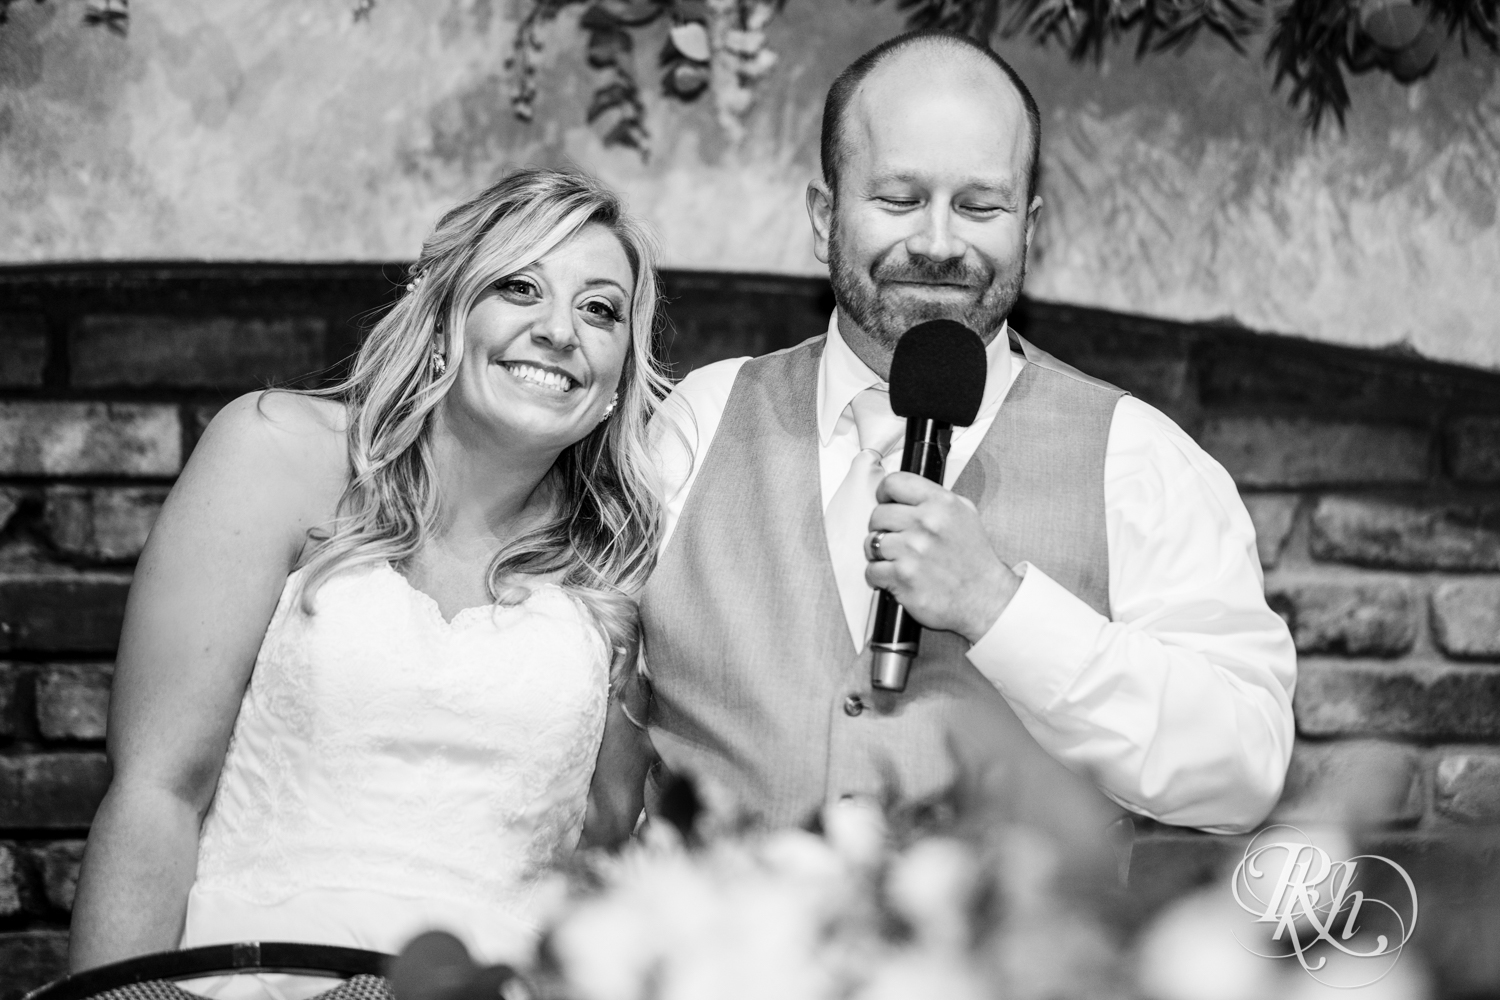 Shannon and Brian - Minnesota Wedding Photography - Raspberry Island - Minnesota Boat Club - RKH Images - Blog  (56 of 60).jpg